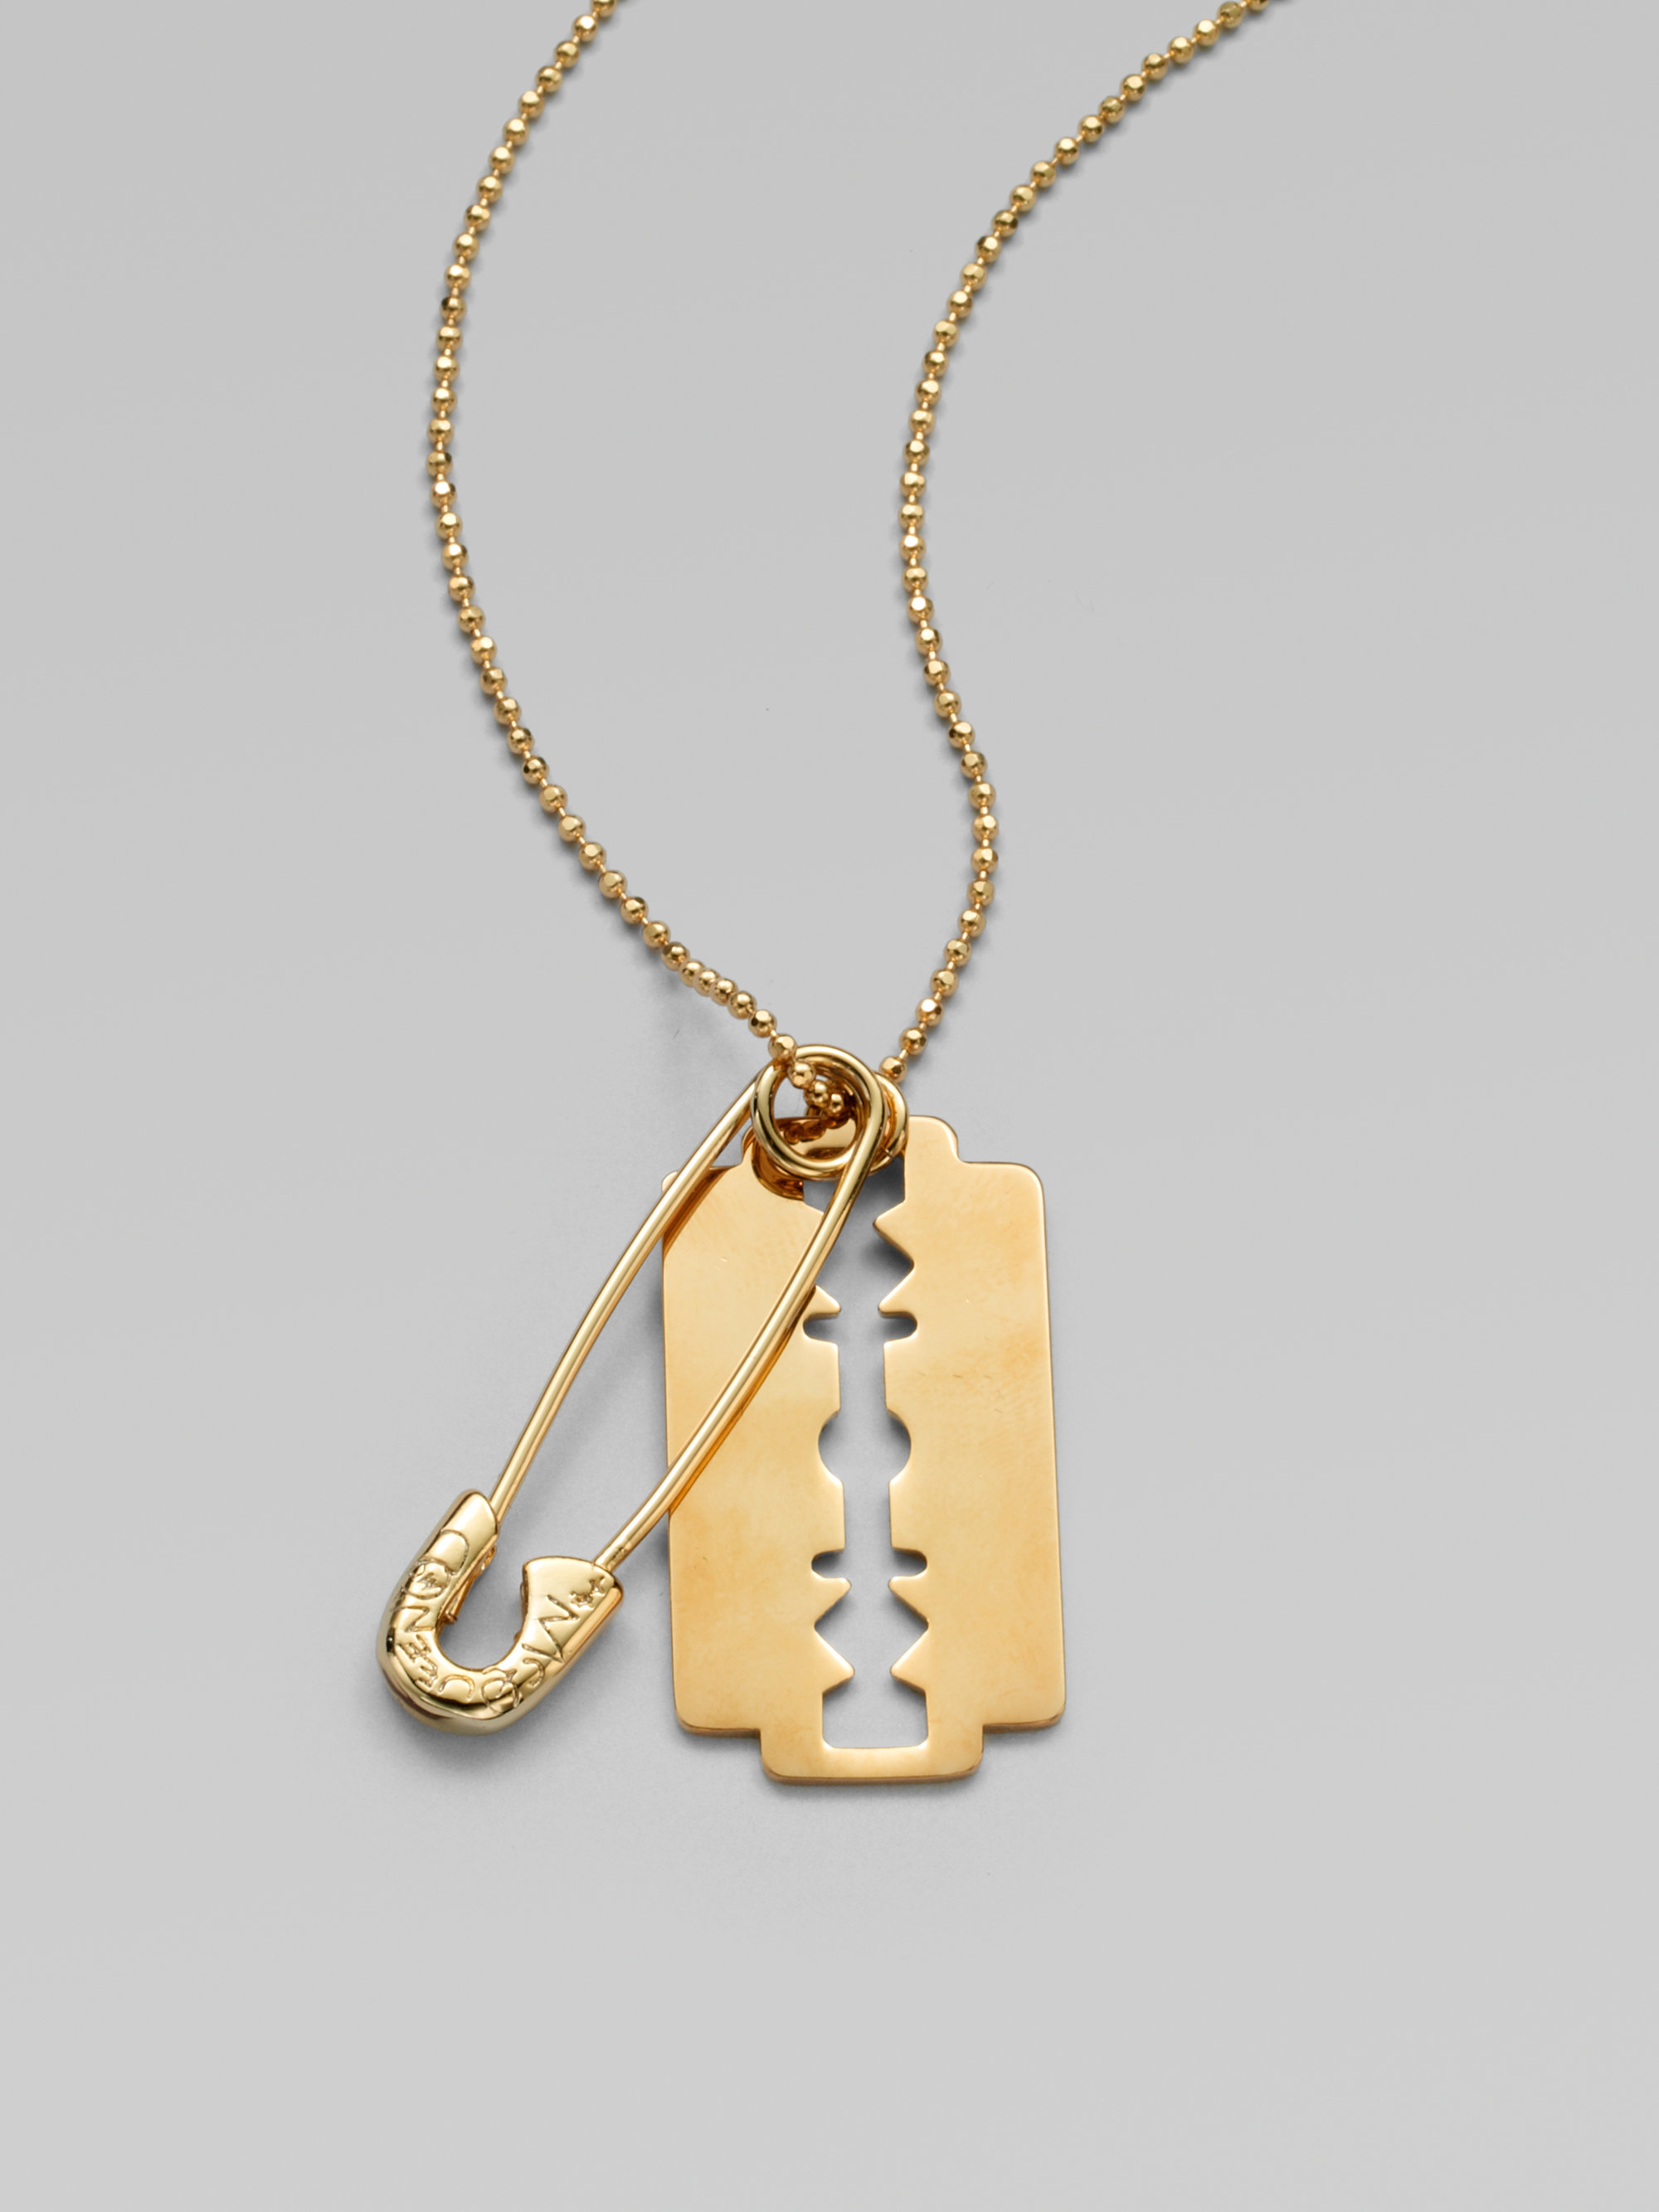 Lyst mcq razor blade pendant necklace in metallic gallery thecheapjerseys Image collections